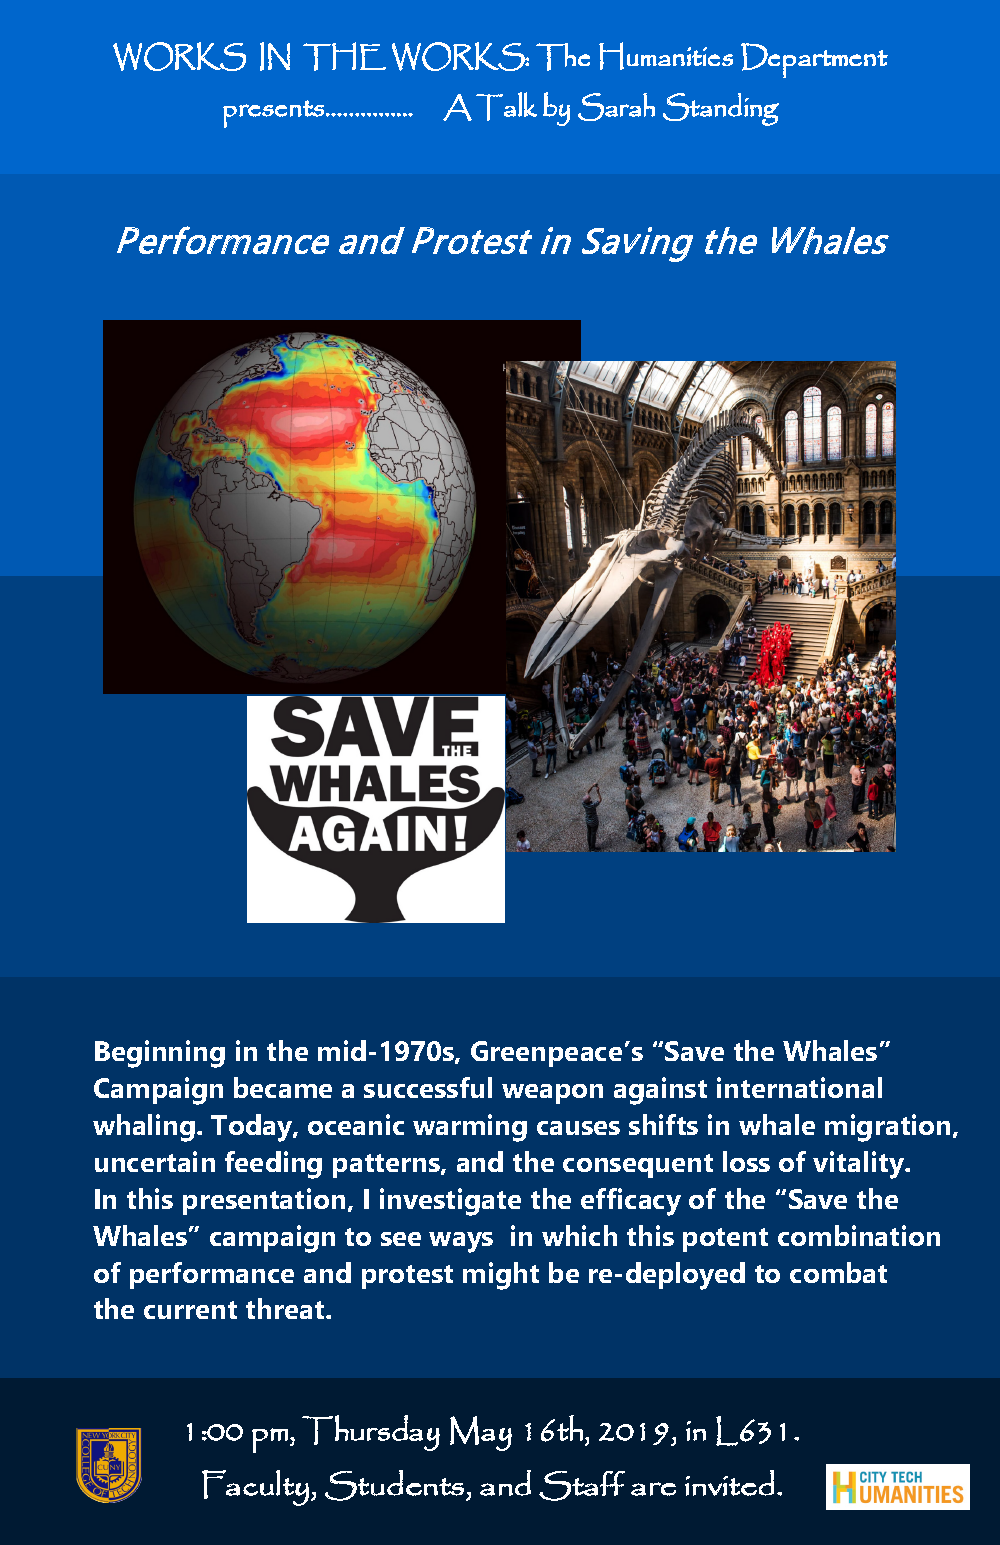 Performance and Protest in Saving the Whales: A Talk by Sarah Standing 1